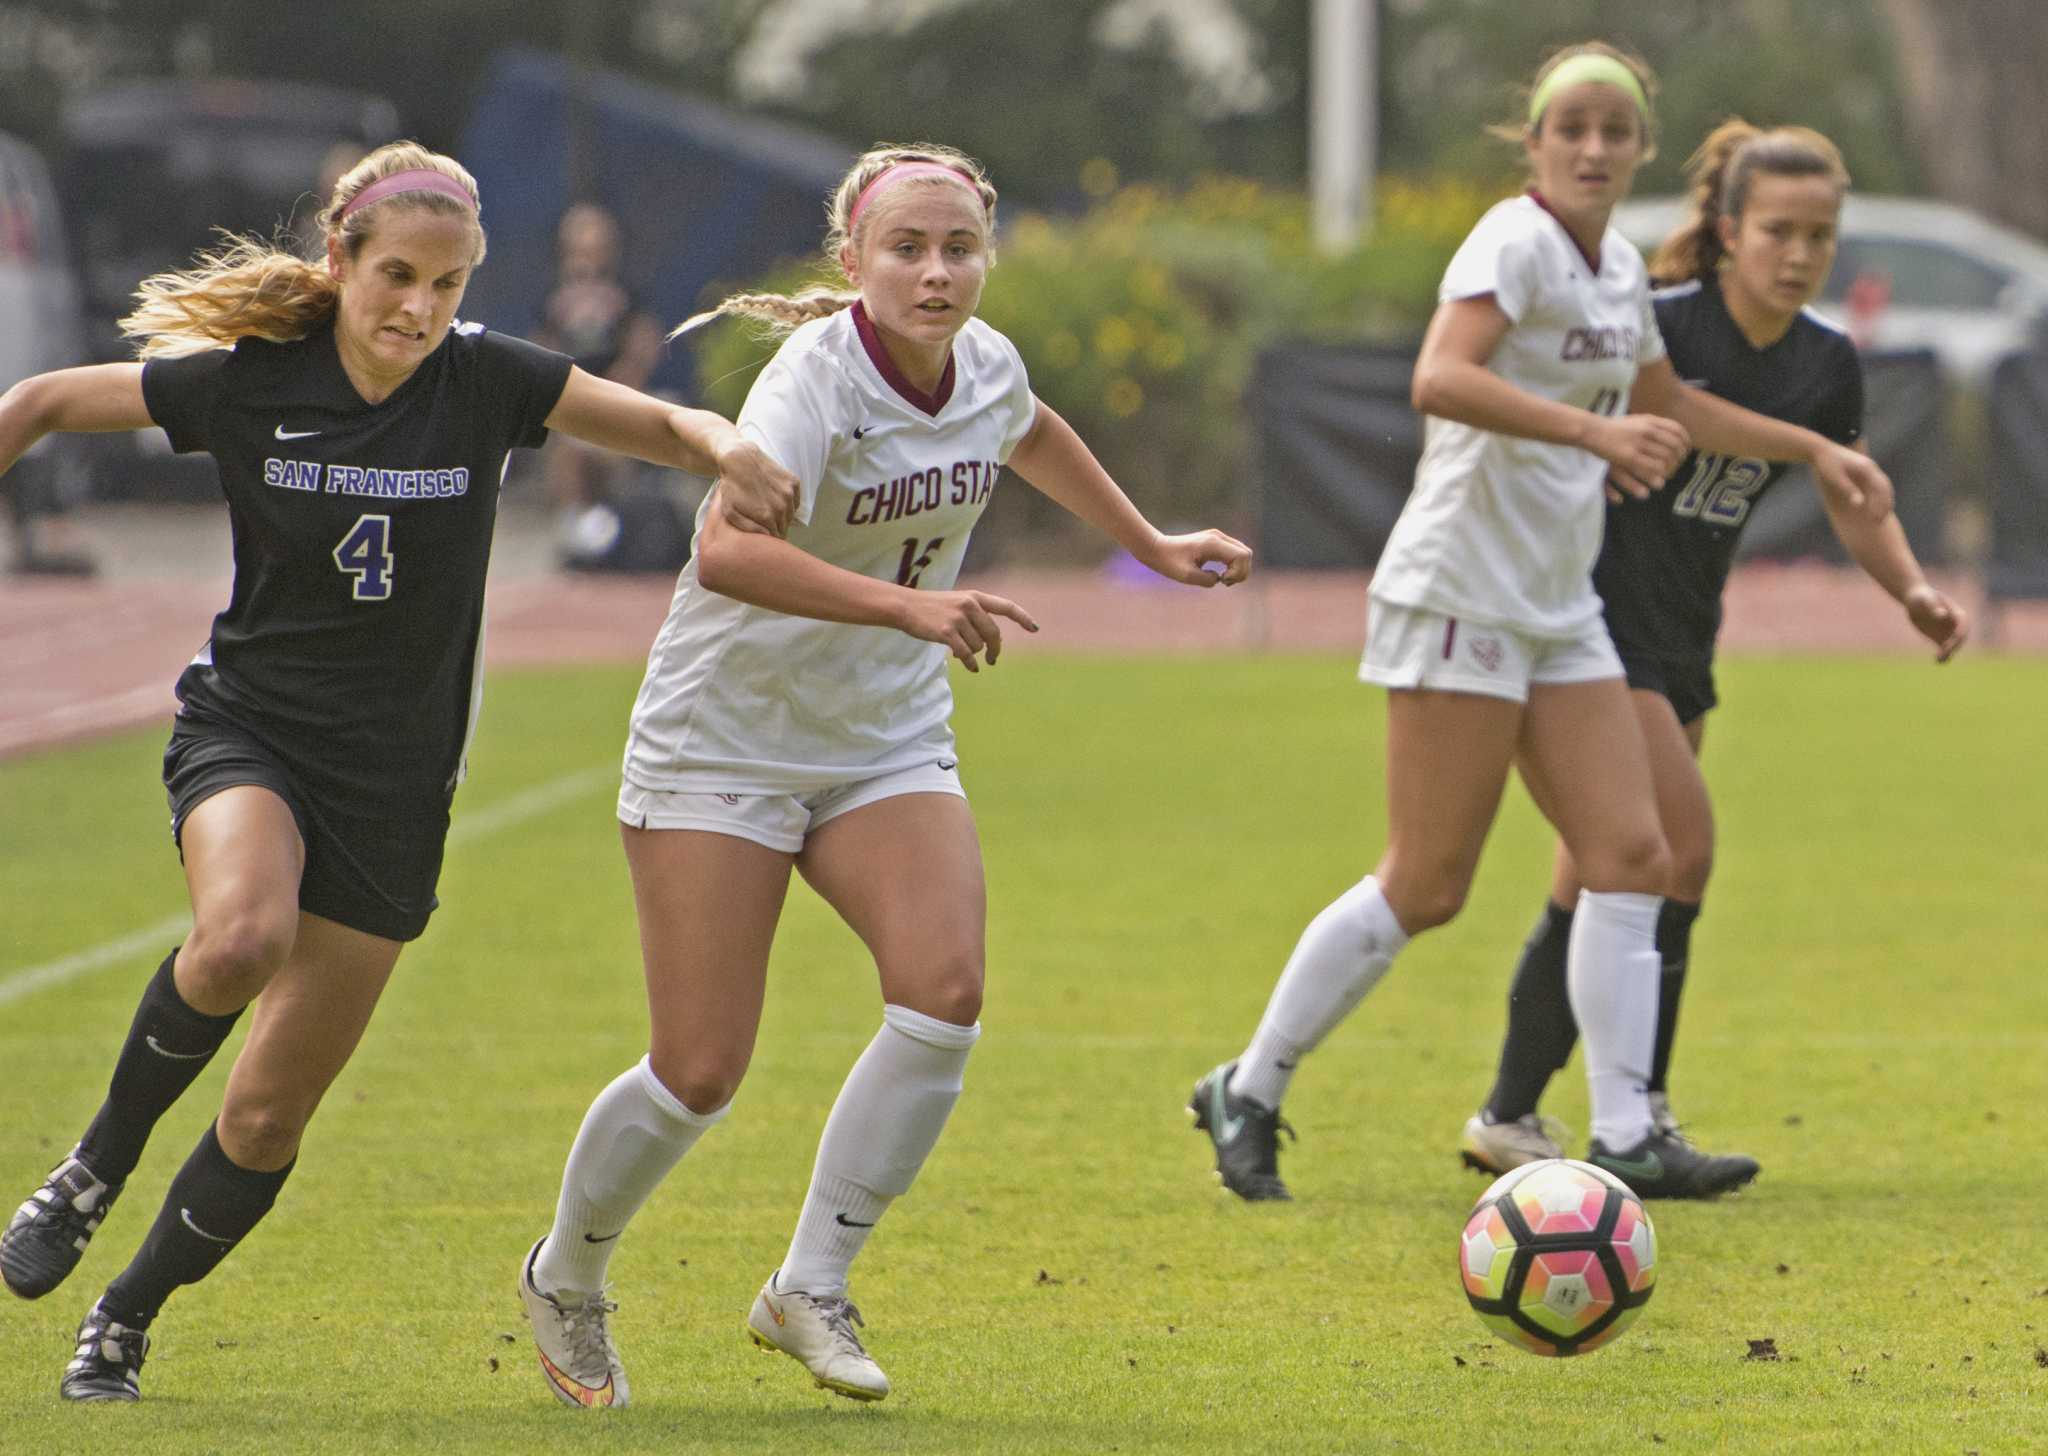 SF State Gators' senior forward Autumn Fox (4) breaks through the Wildcats' defense during their 2-1 win over Chico State University at Cox Stadium on Friday, Sept. 16, 2016.